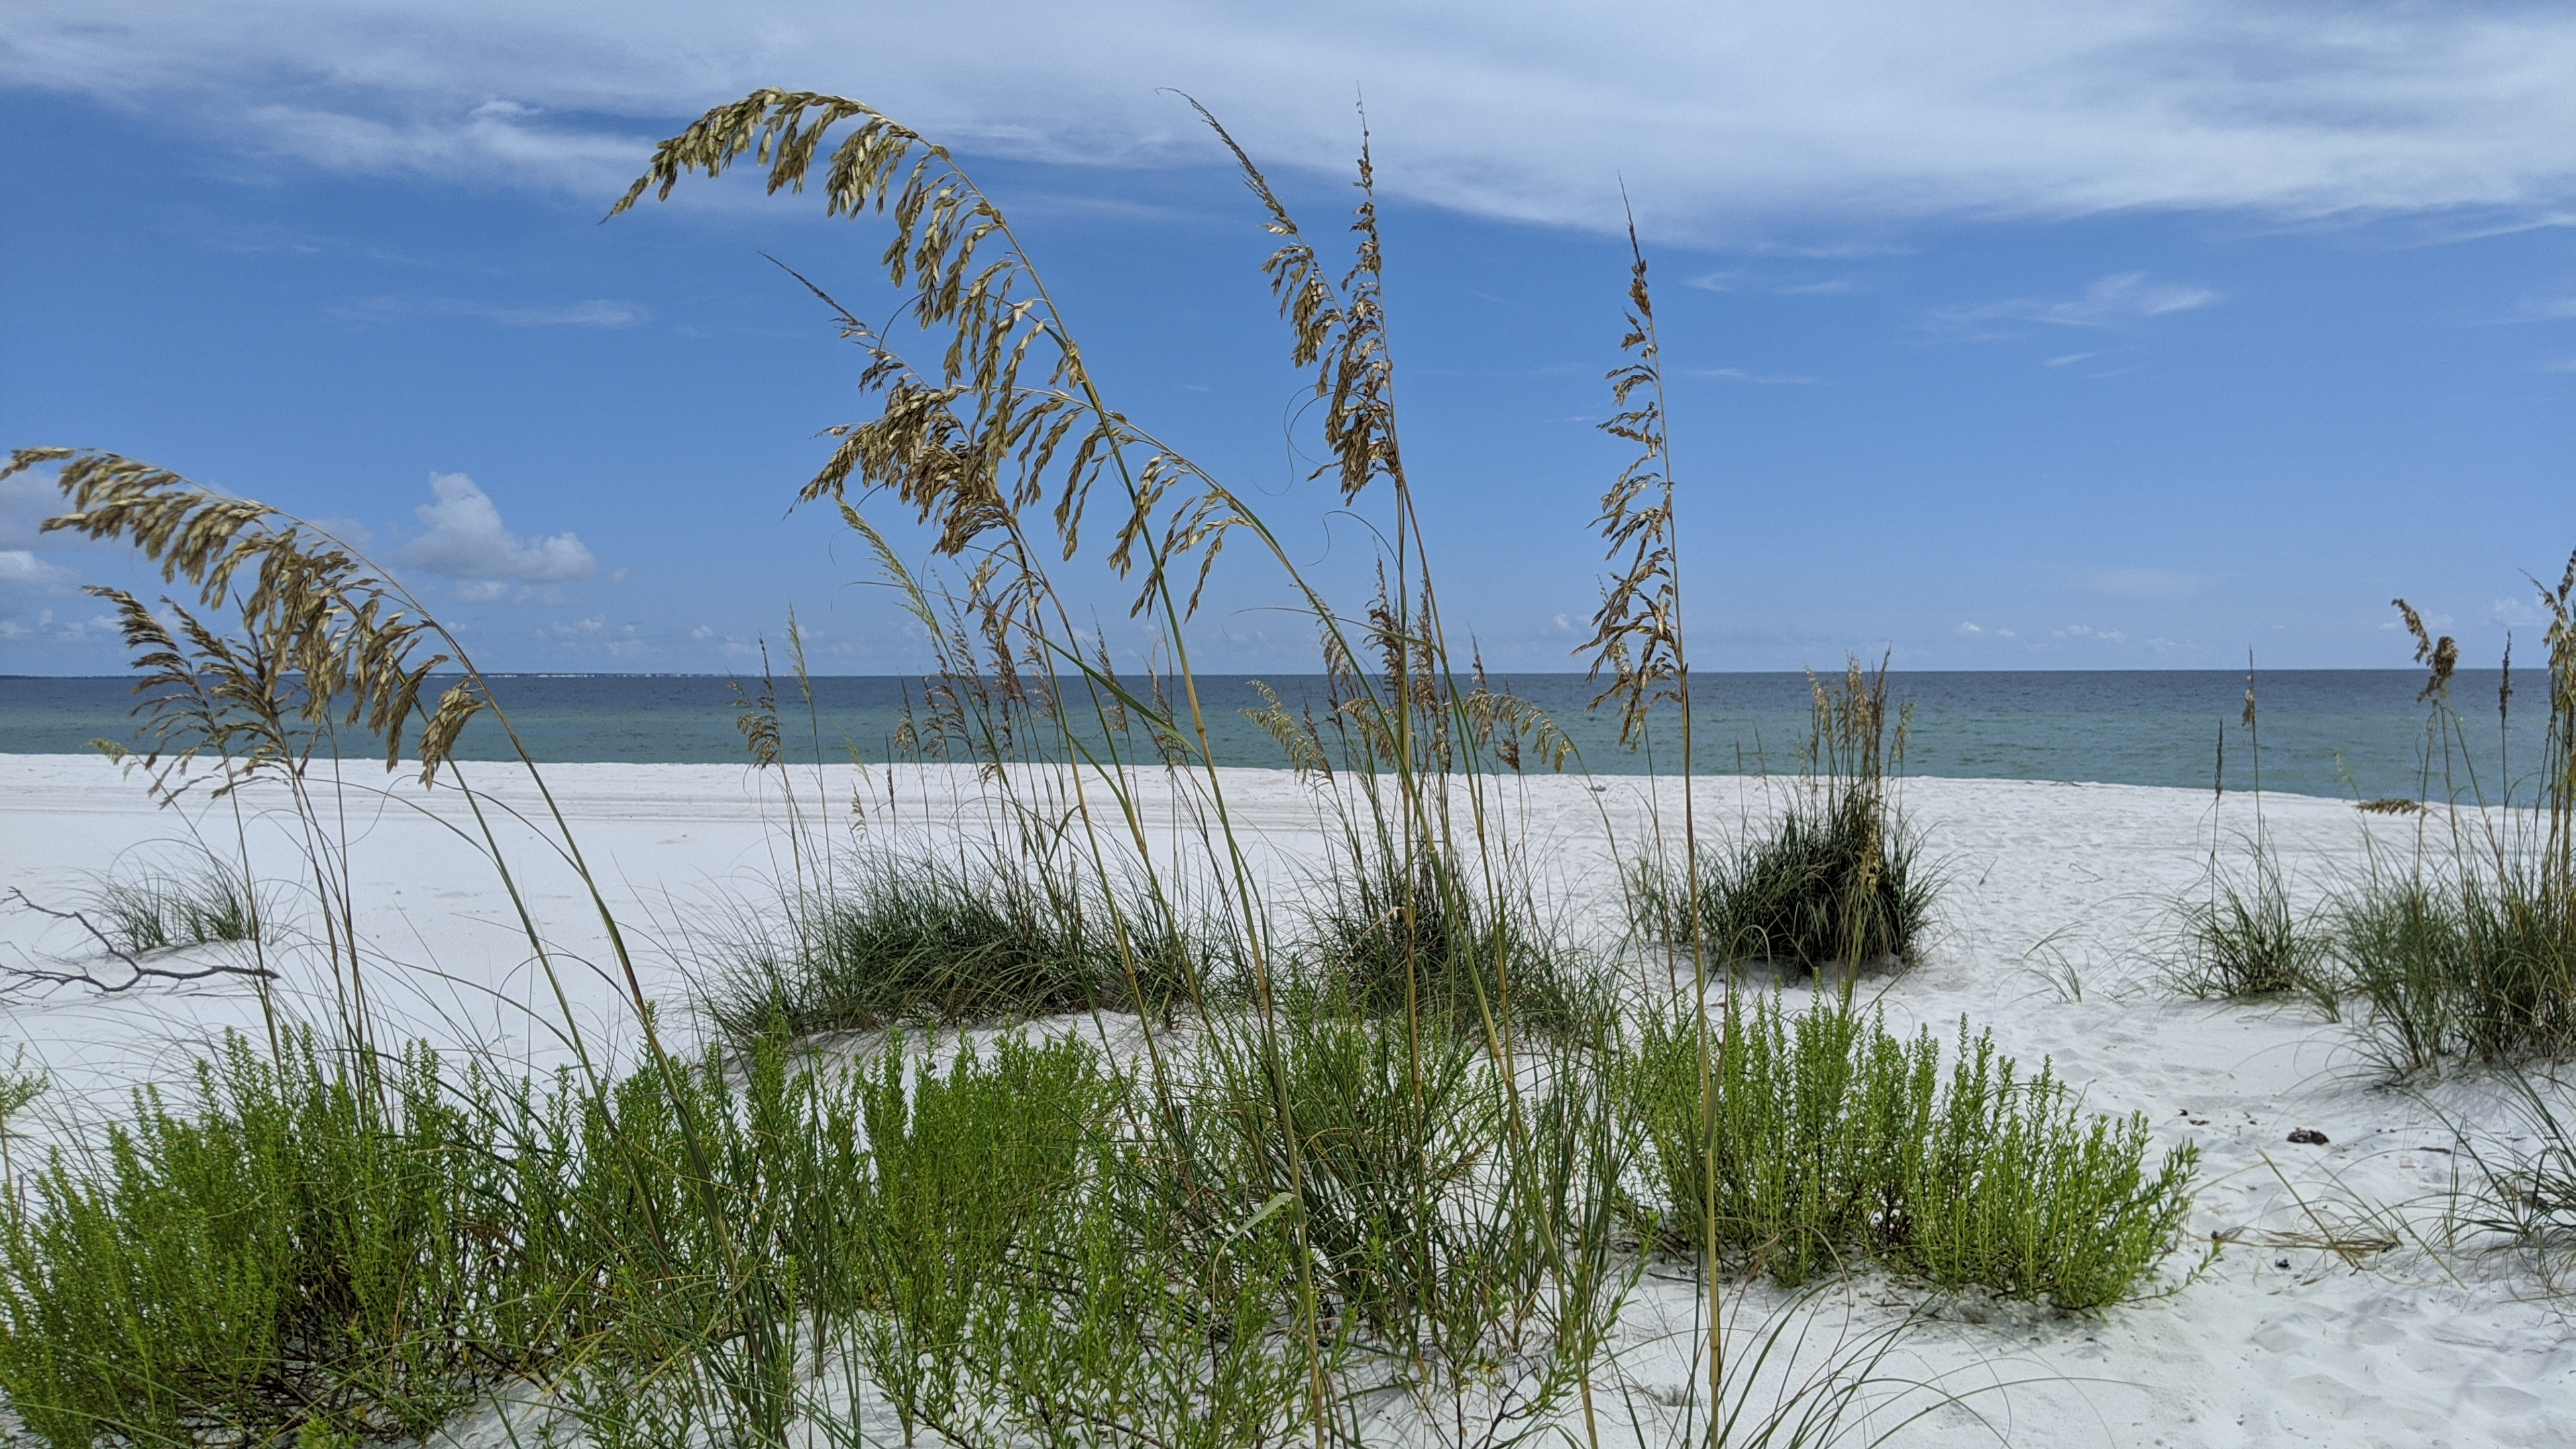 Crooked Island beach in Bay County